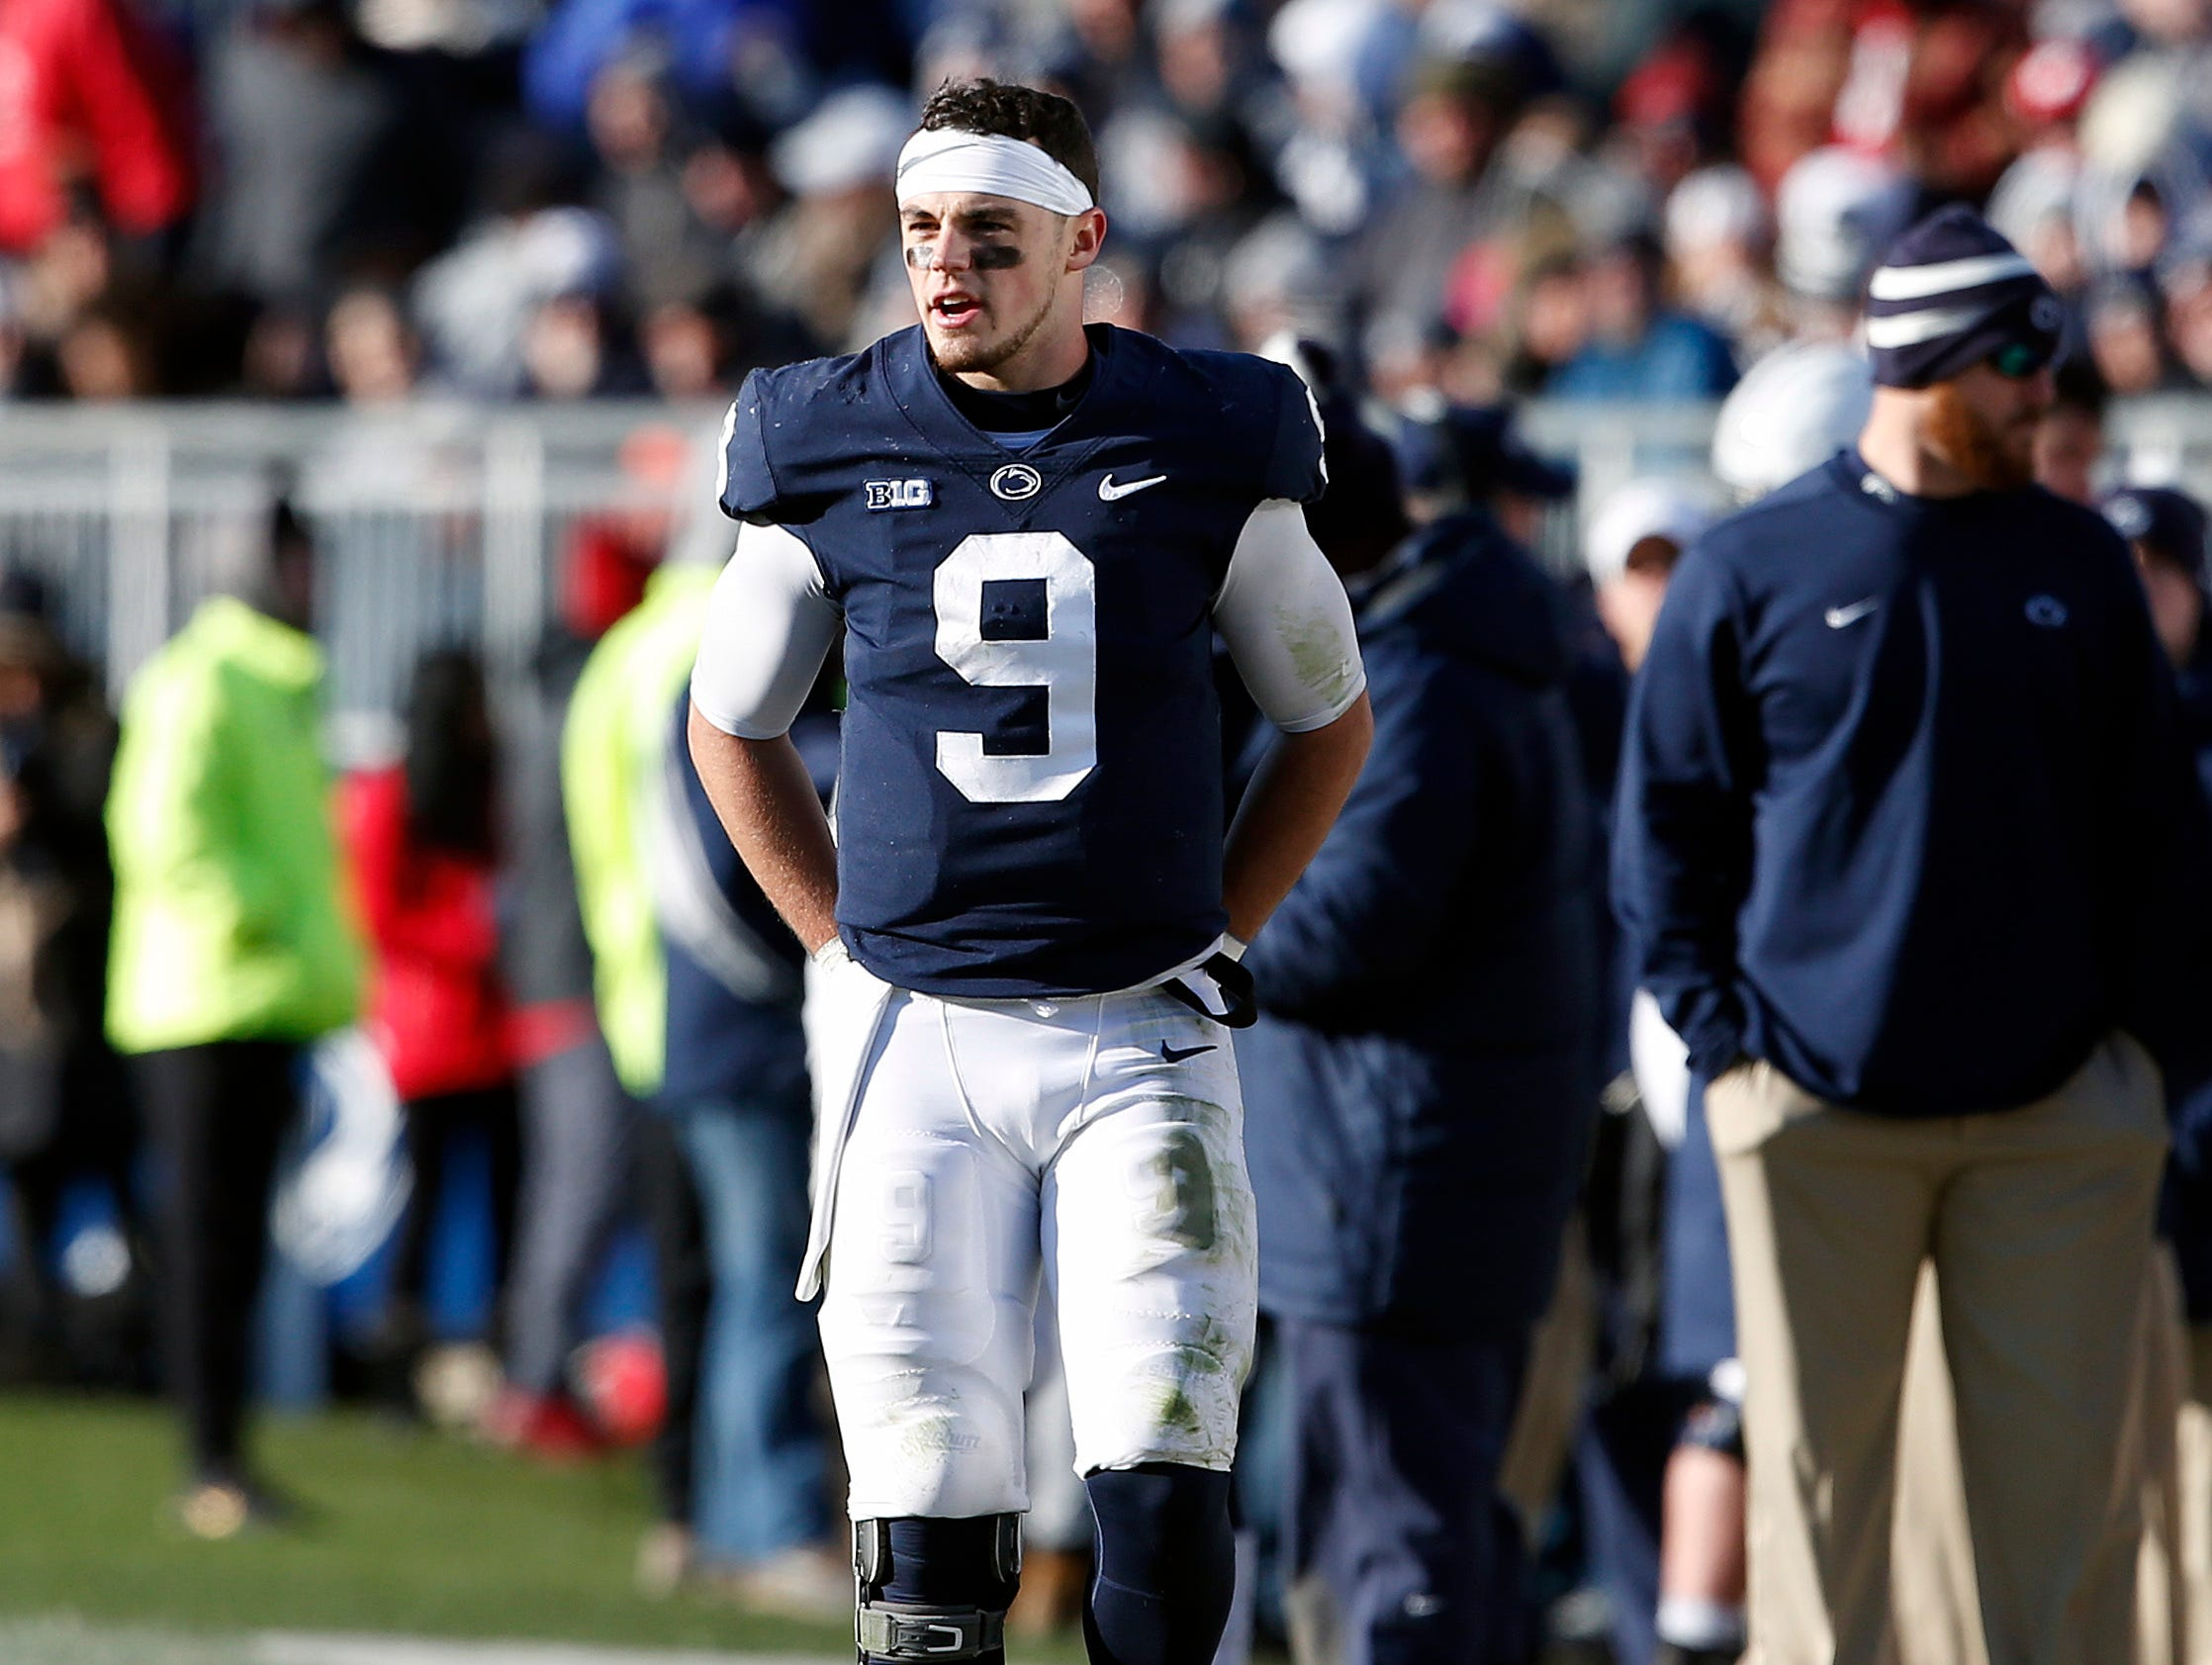 Rutgers-Penn State: As Trace McSorley nears wins record, John McNulty offers appreciation